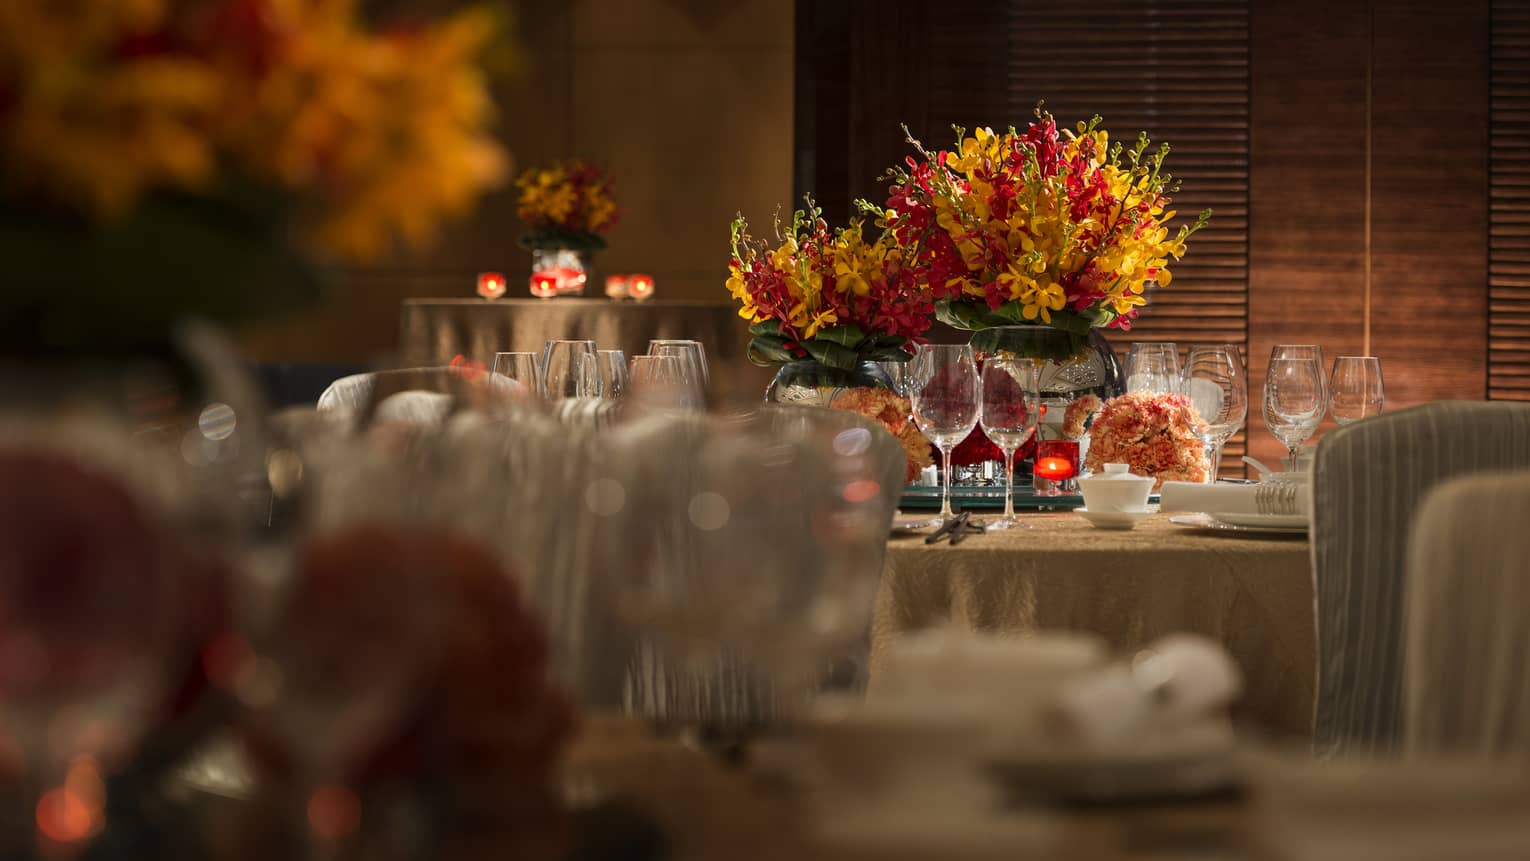 Orange and red flowers, candles on round banquet tables with gold linens